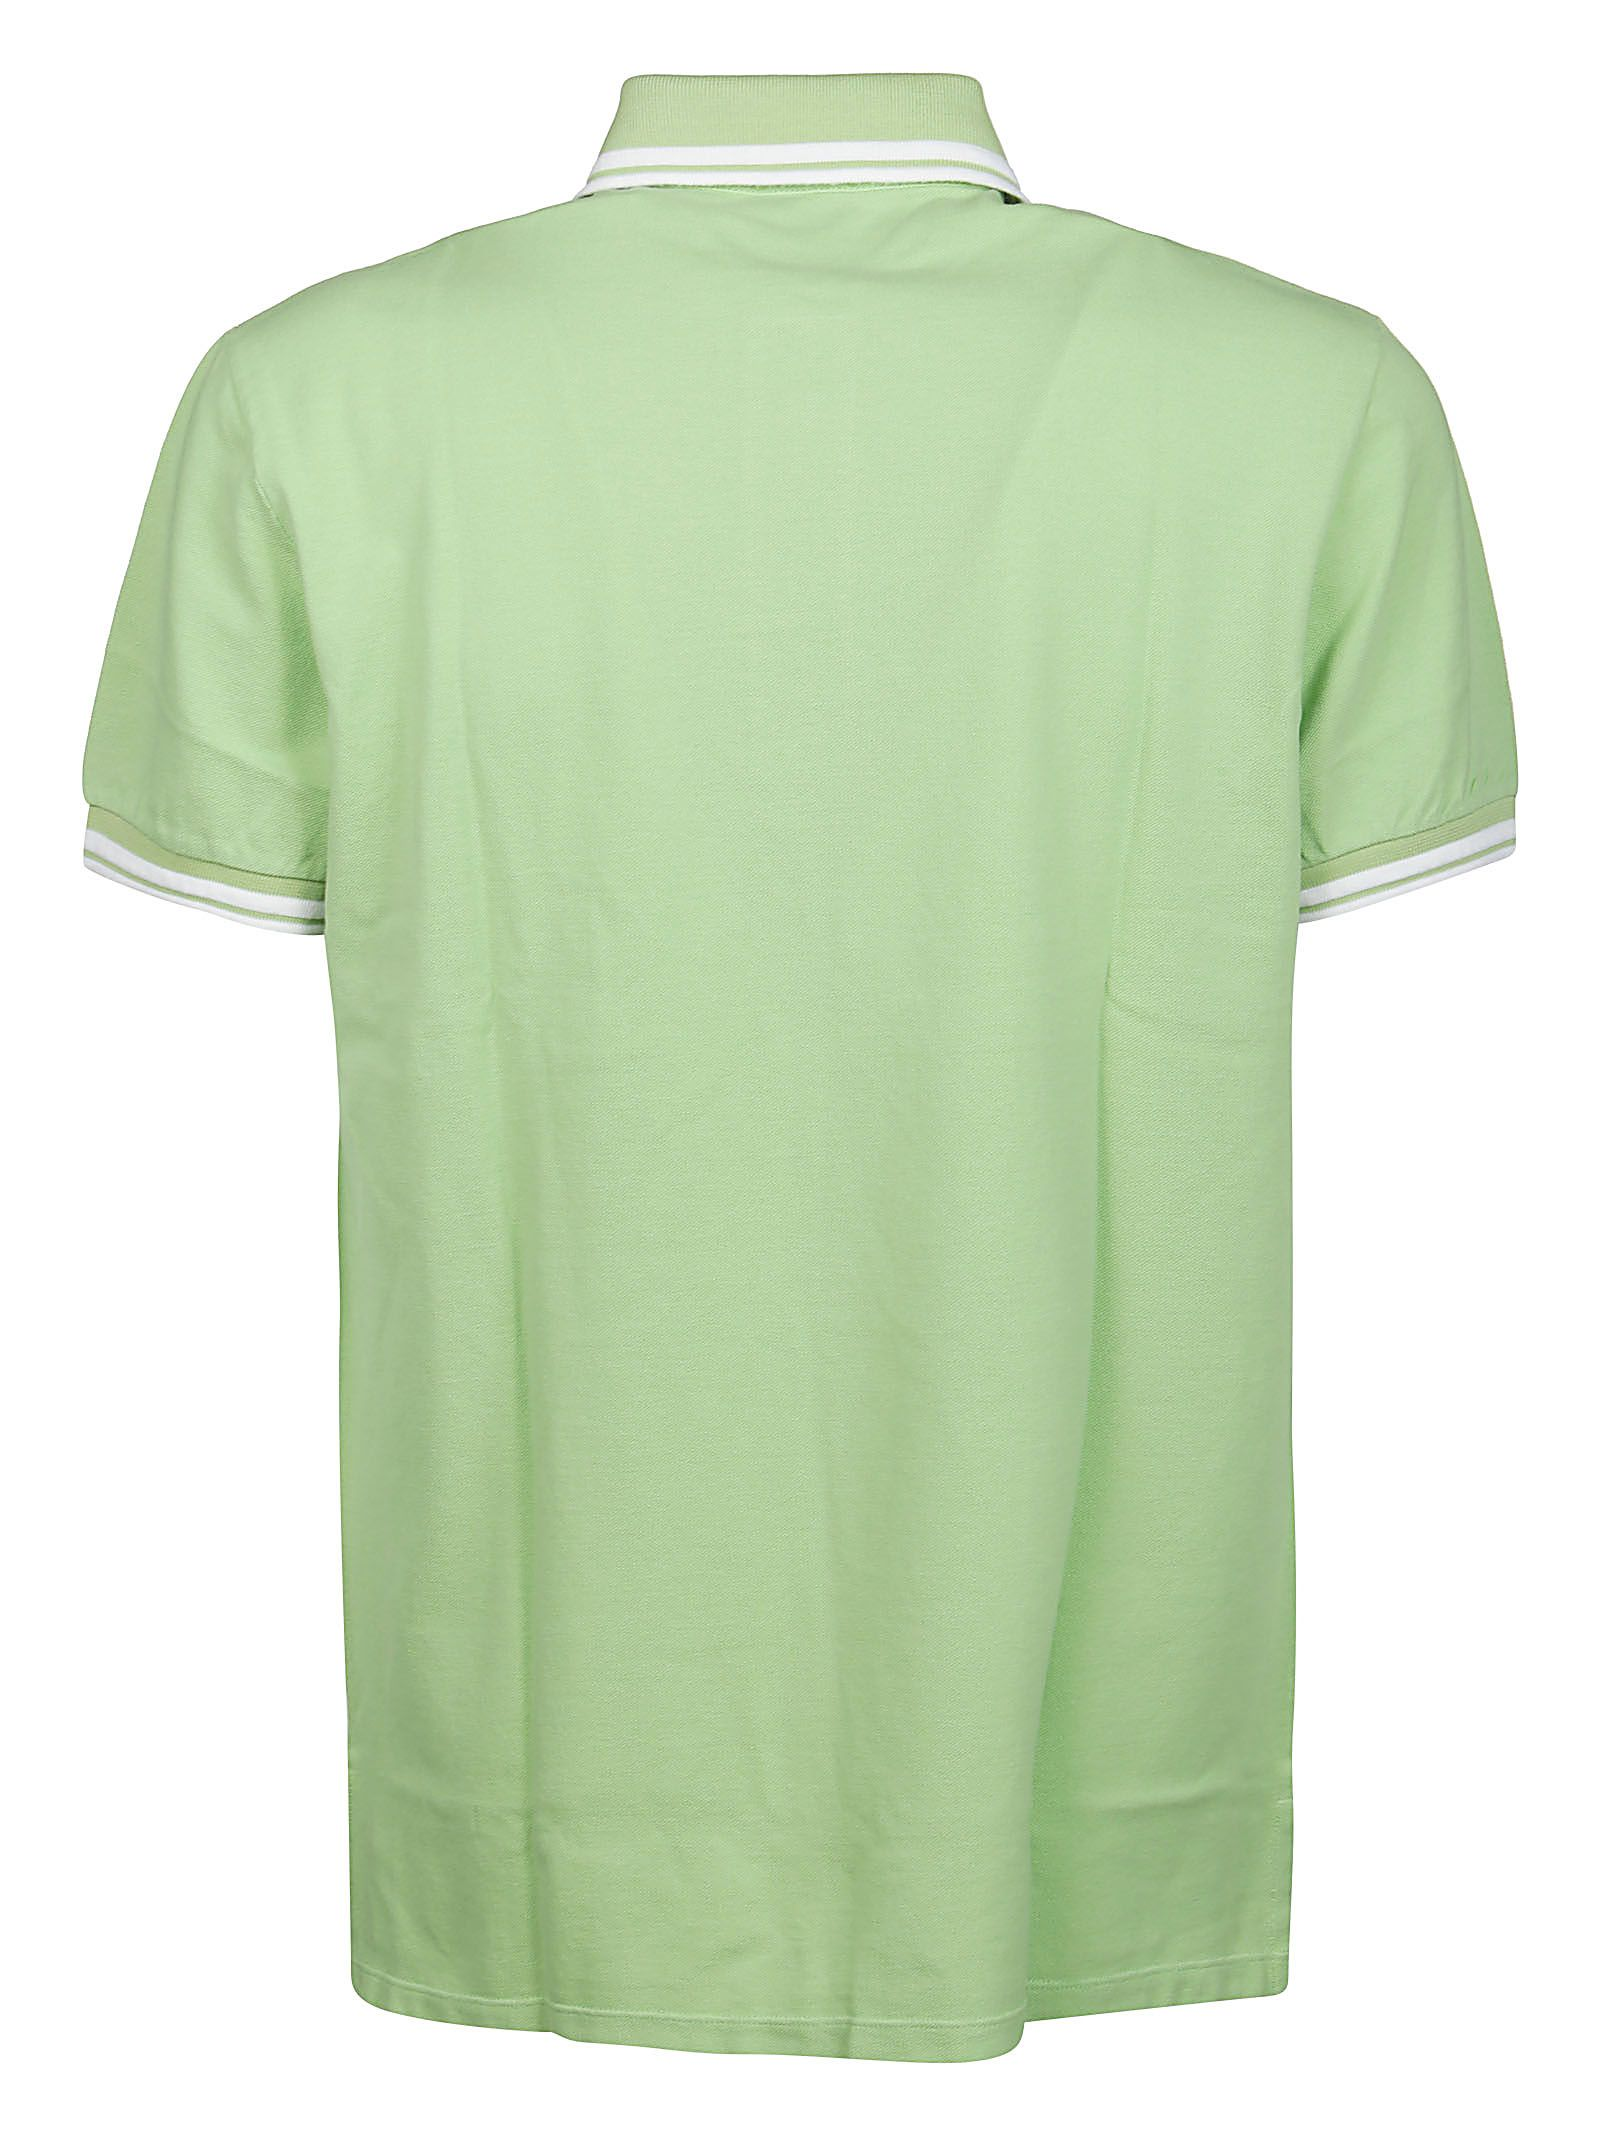 ETRO Cottons ETRO MEN'S GREEN OTHER MATERIALS POLO SHIRT